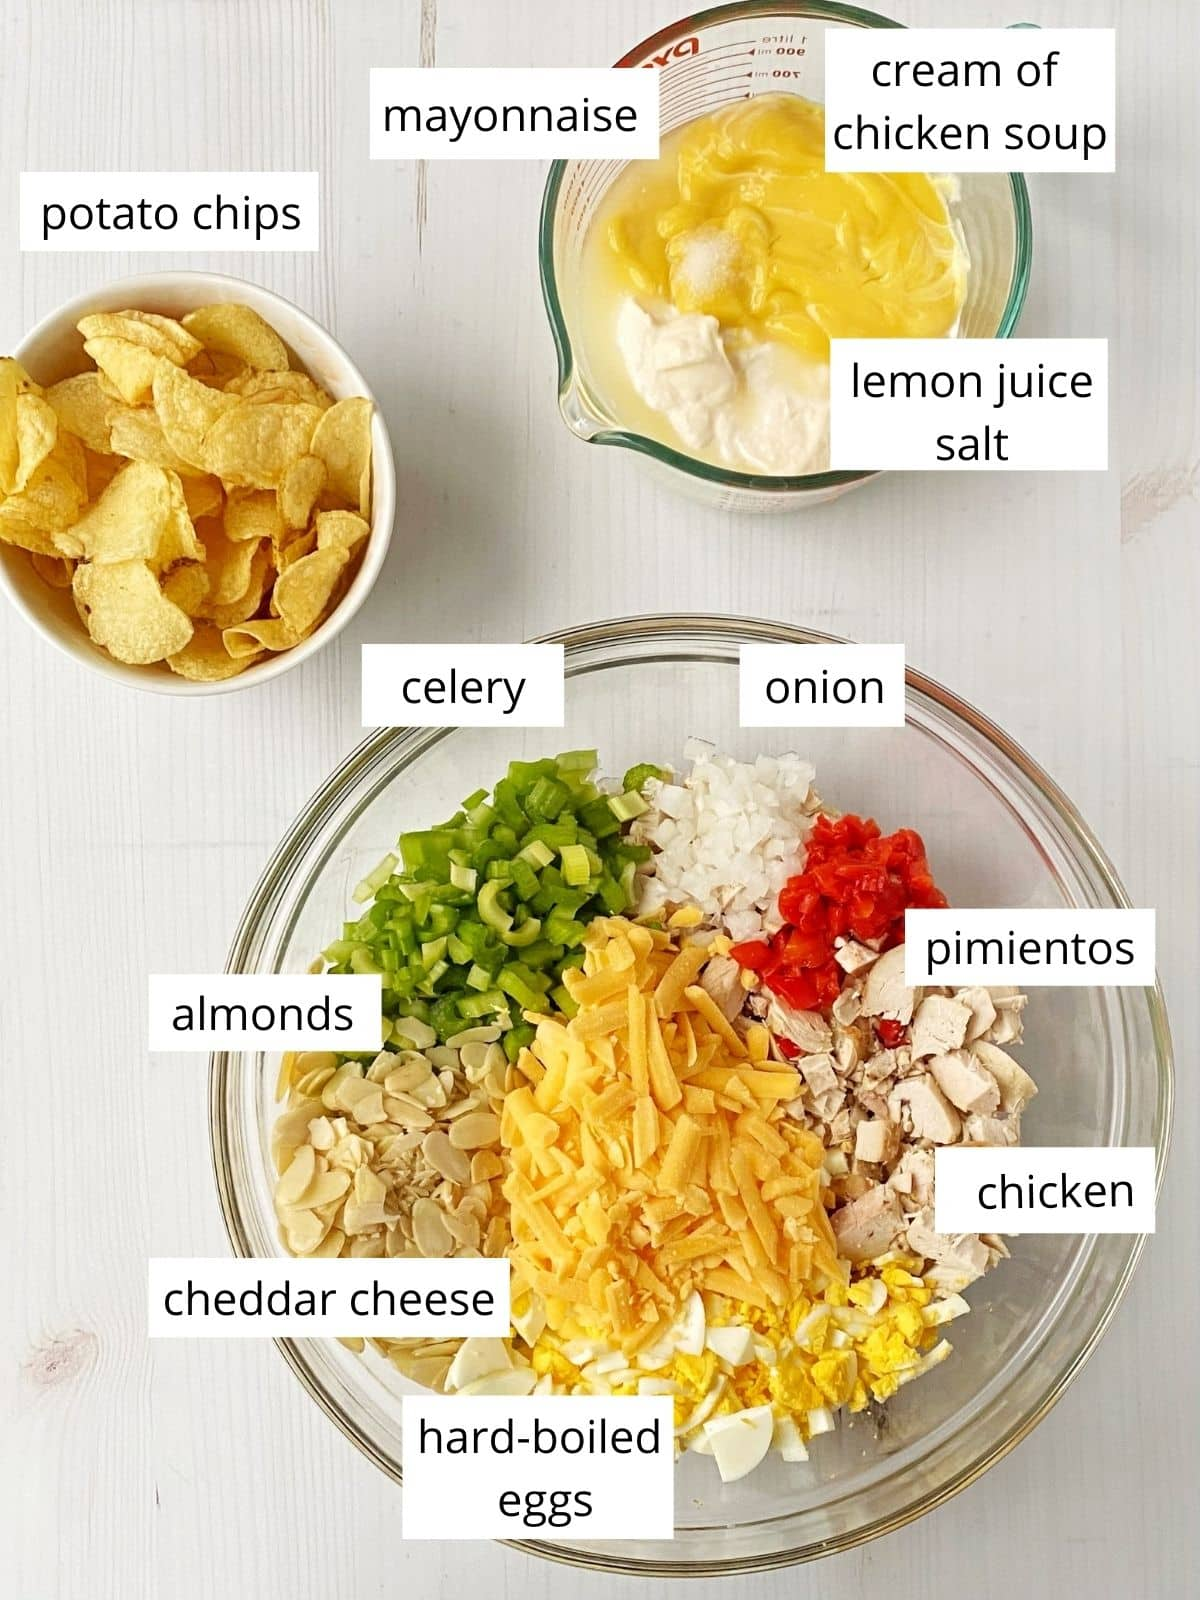 array of ingredients - mayo, cream of chicken soup, lemon juice, potato chips, onions, celery, pimientos, chicken, cheese, hard-boiled eggs, almonds